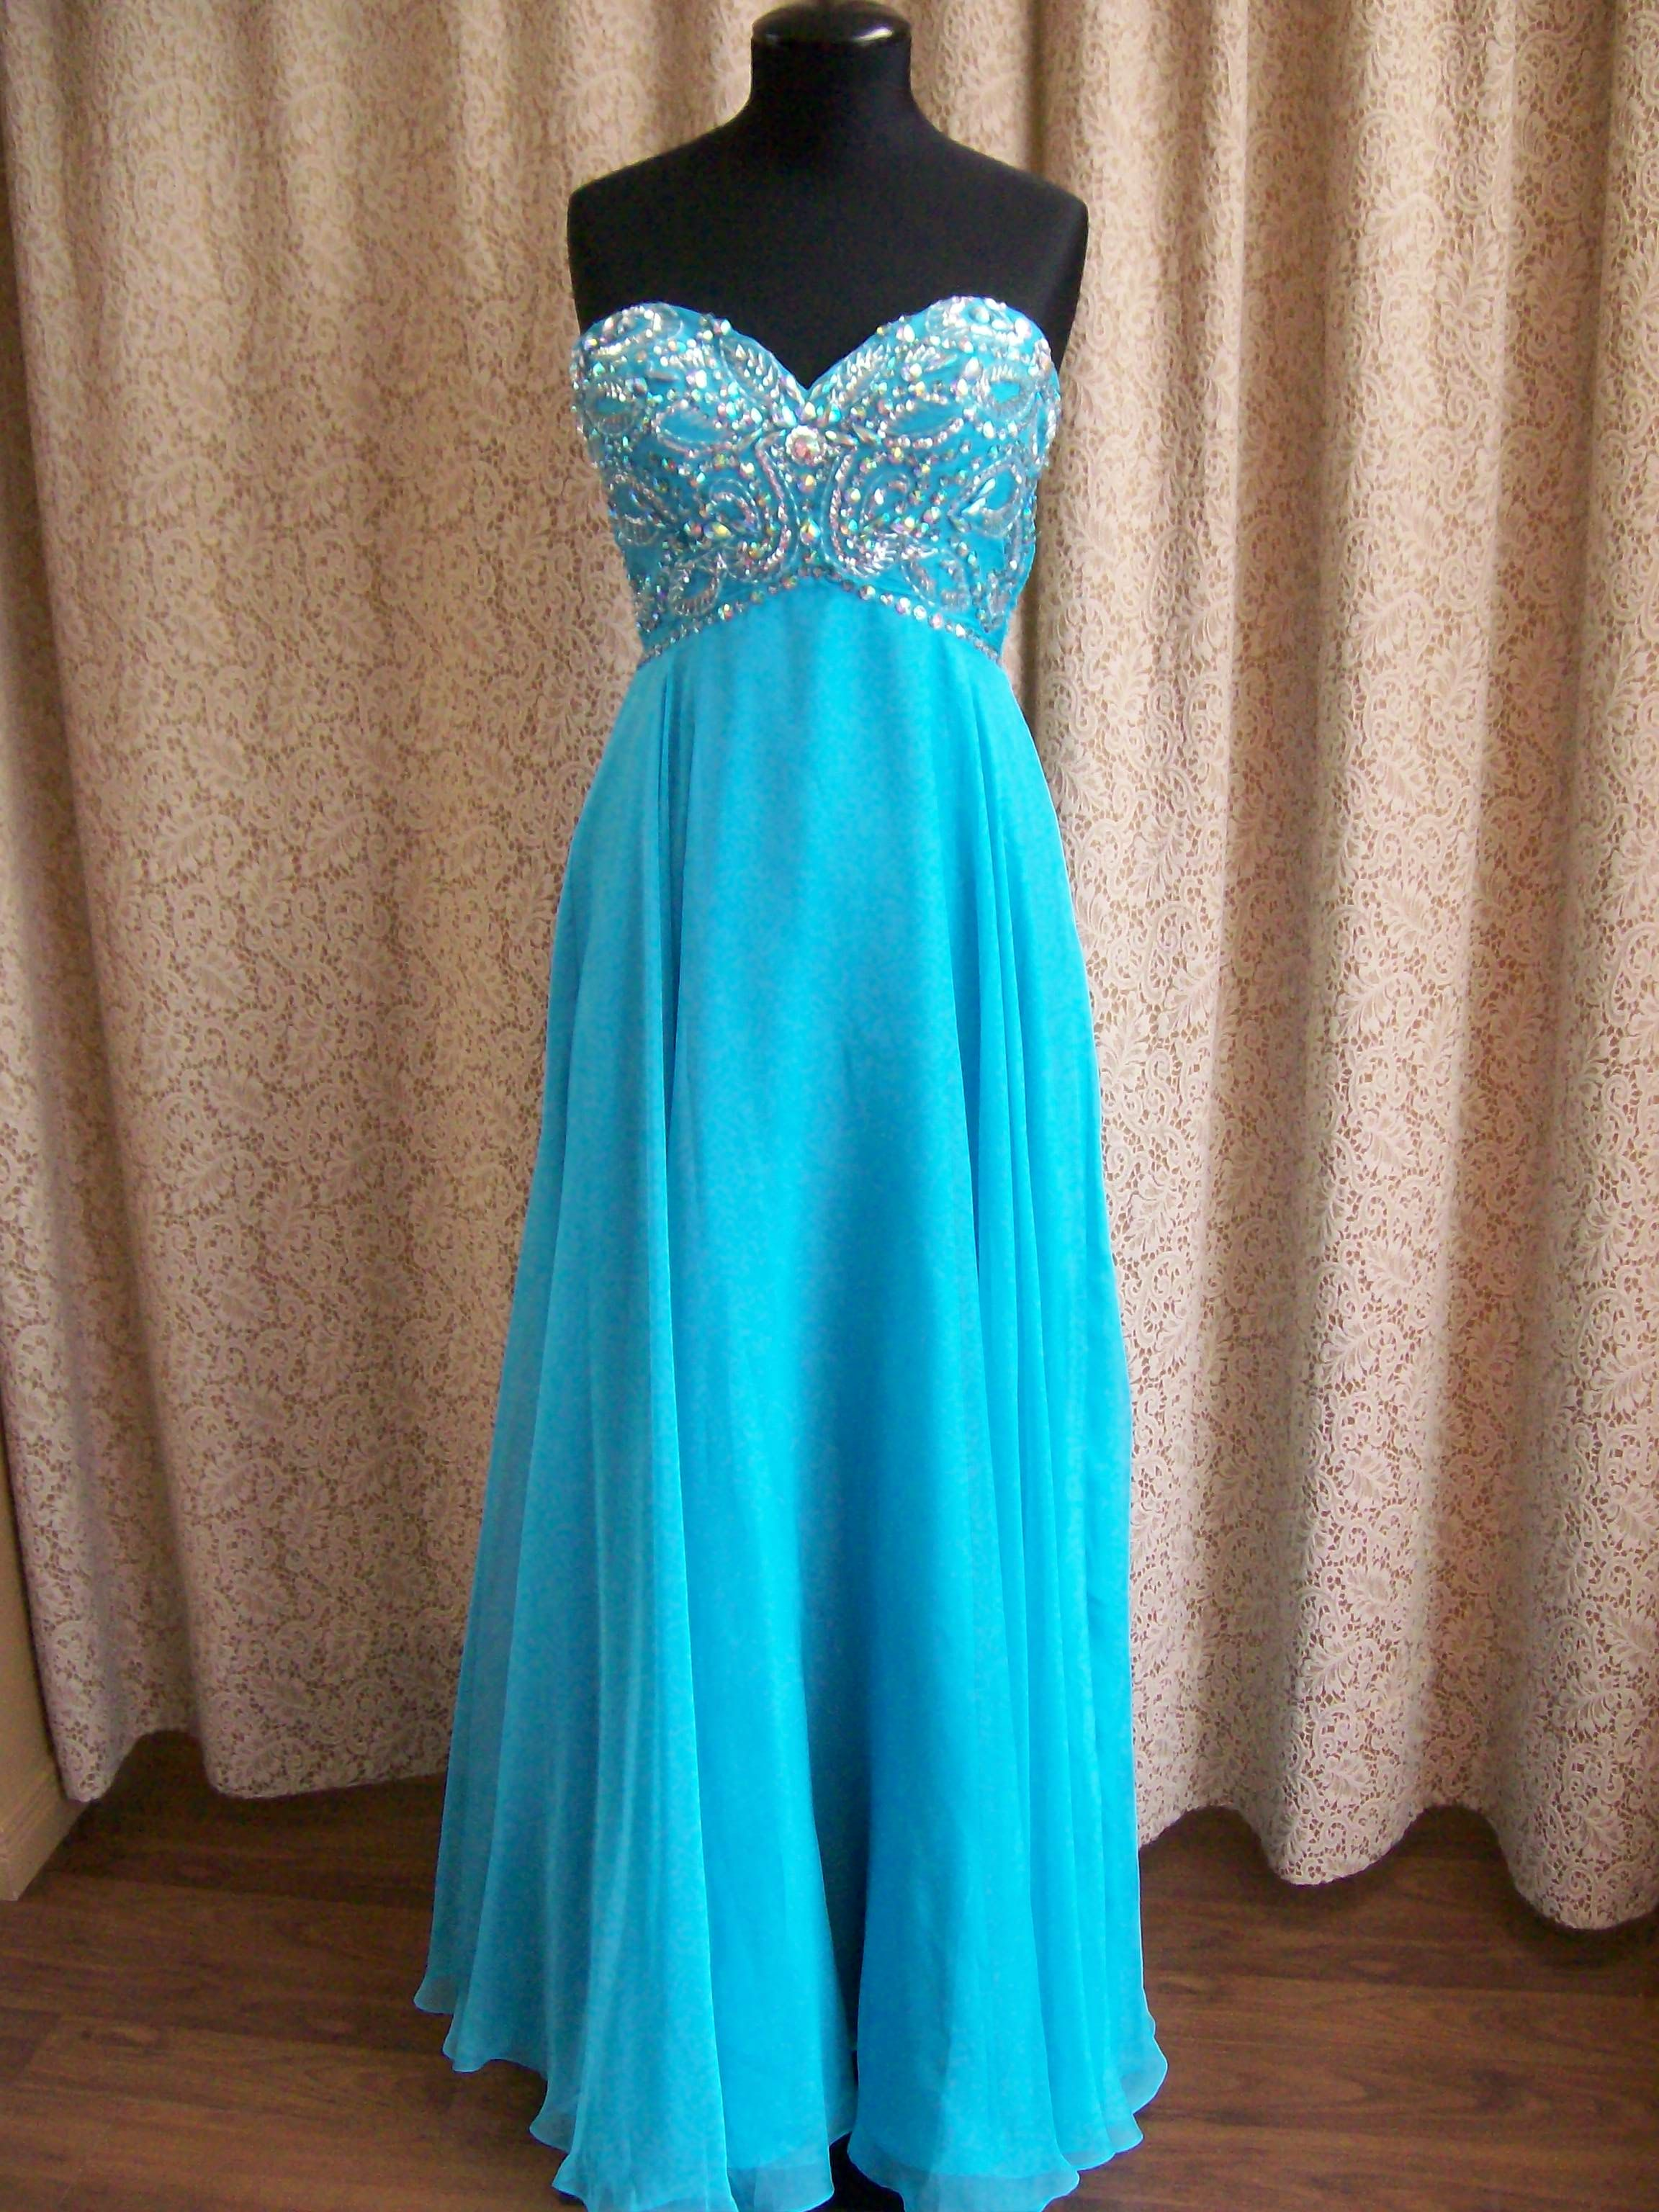 Beautiful Tiffany Blue Chiffon Prom Dress With Blingy Bodice and sweetheart neckline, Size 6, $345.00. #Prom2015 #promhamilton #promdresses #Promsexy #promcanada #graduation #fancyprom #blingyprom #longpromdress #jefferybridal #bluedress #blueprom #sexyprom #blingy